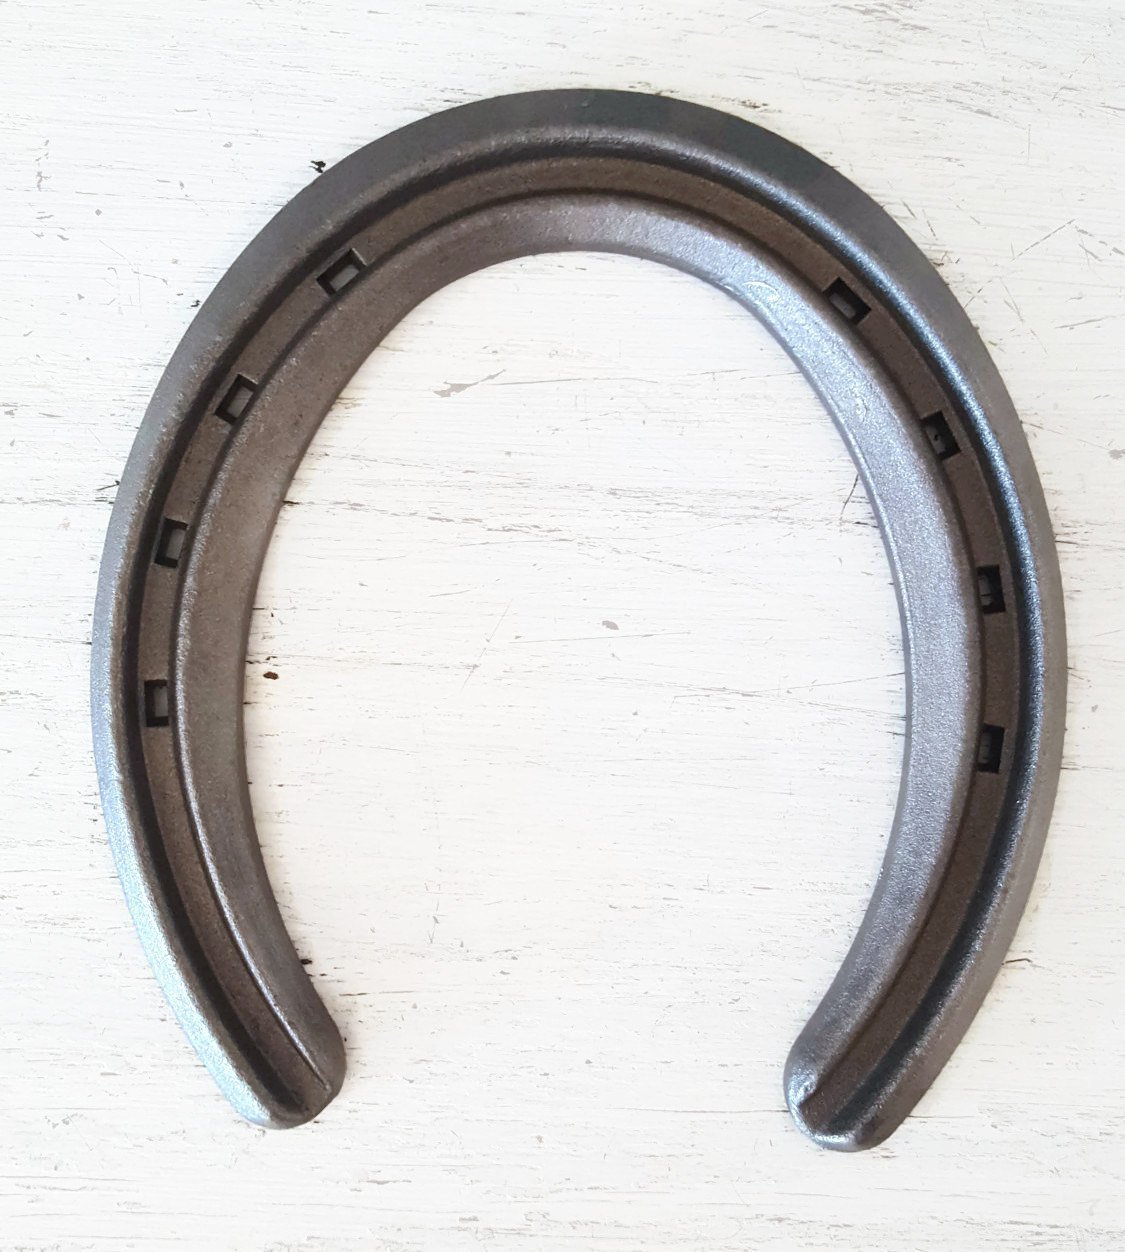 New Steel Horseshoes - Lite Rim Size 1 - Sand Blasted - The Heritage Forge Size 1 - 20 Shoes